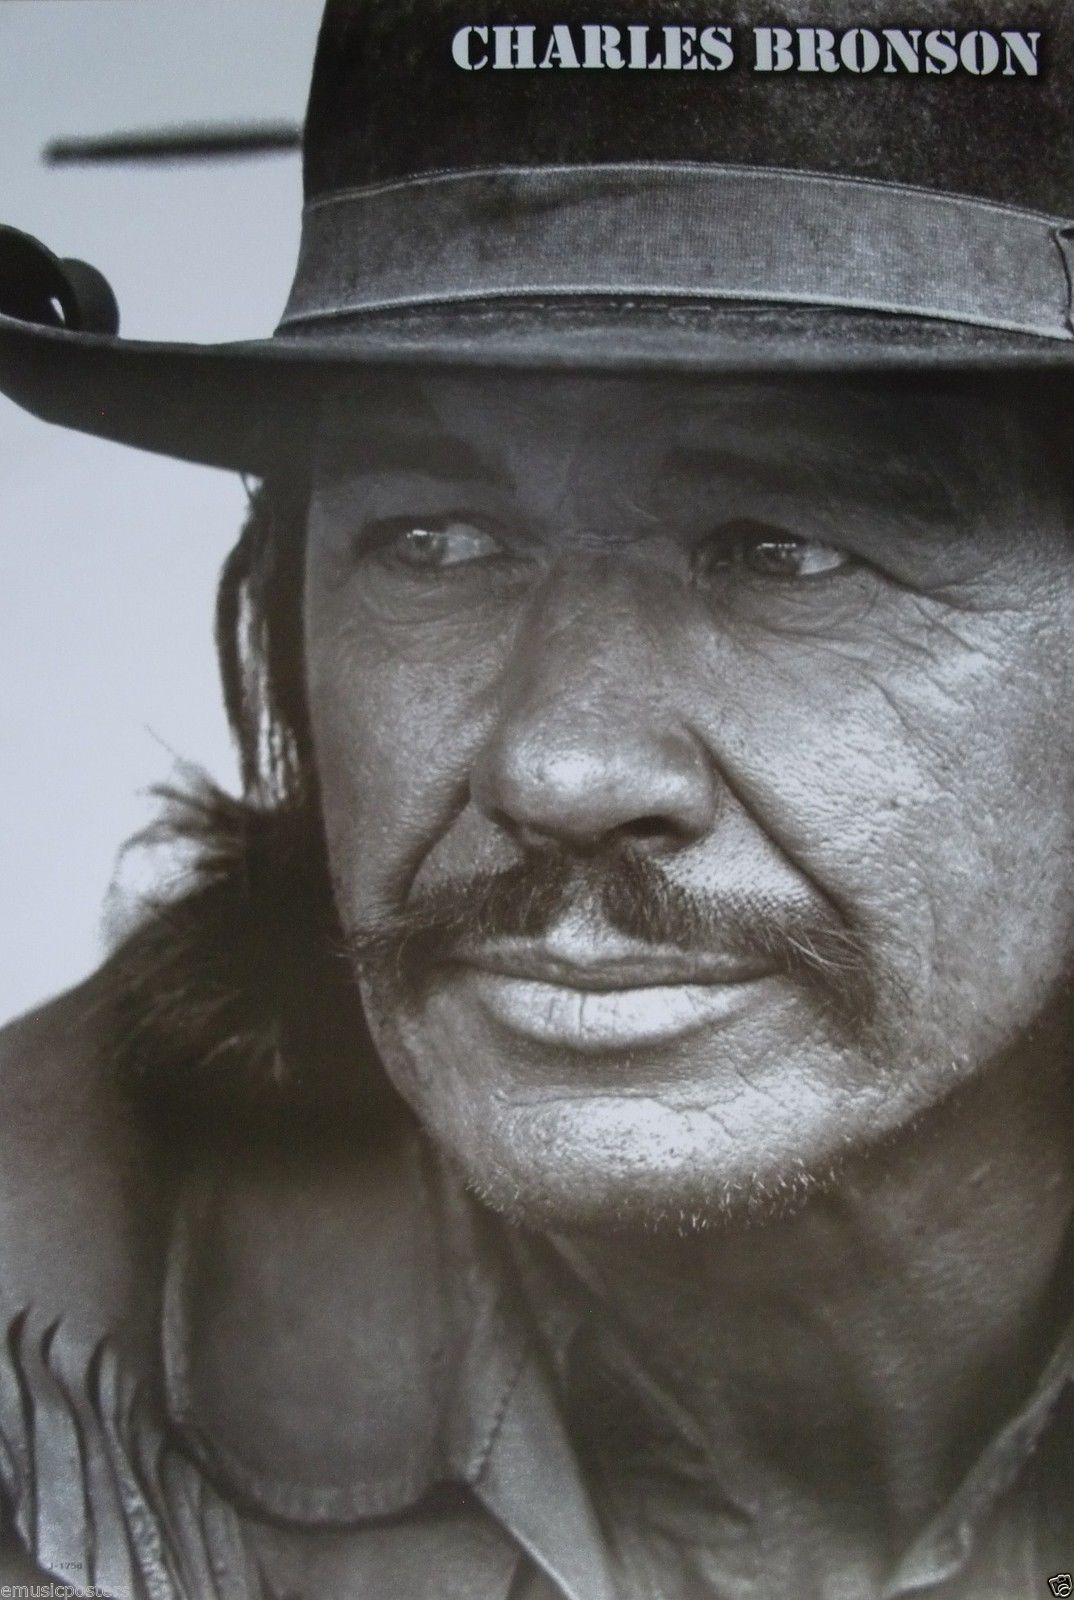 charles bronson photography pinterest charles